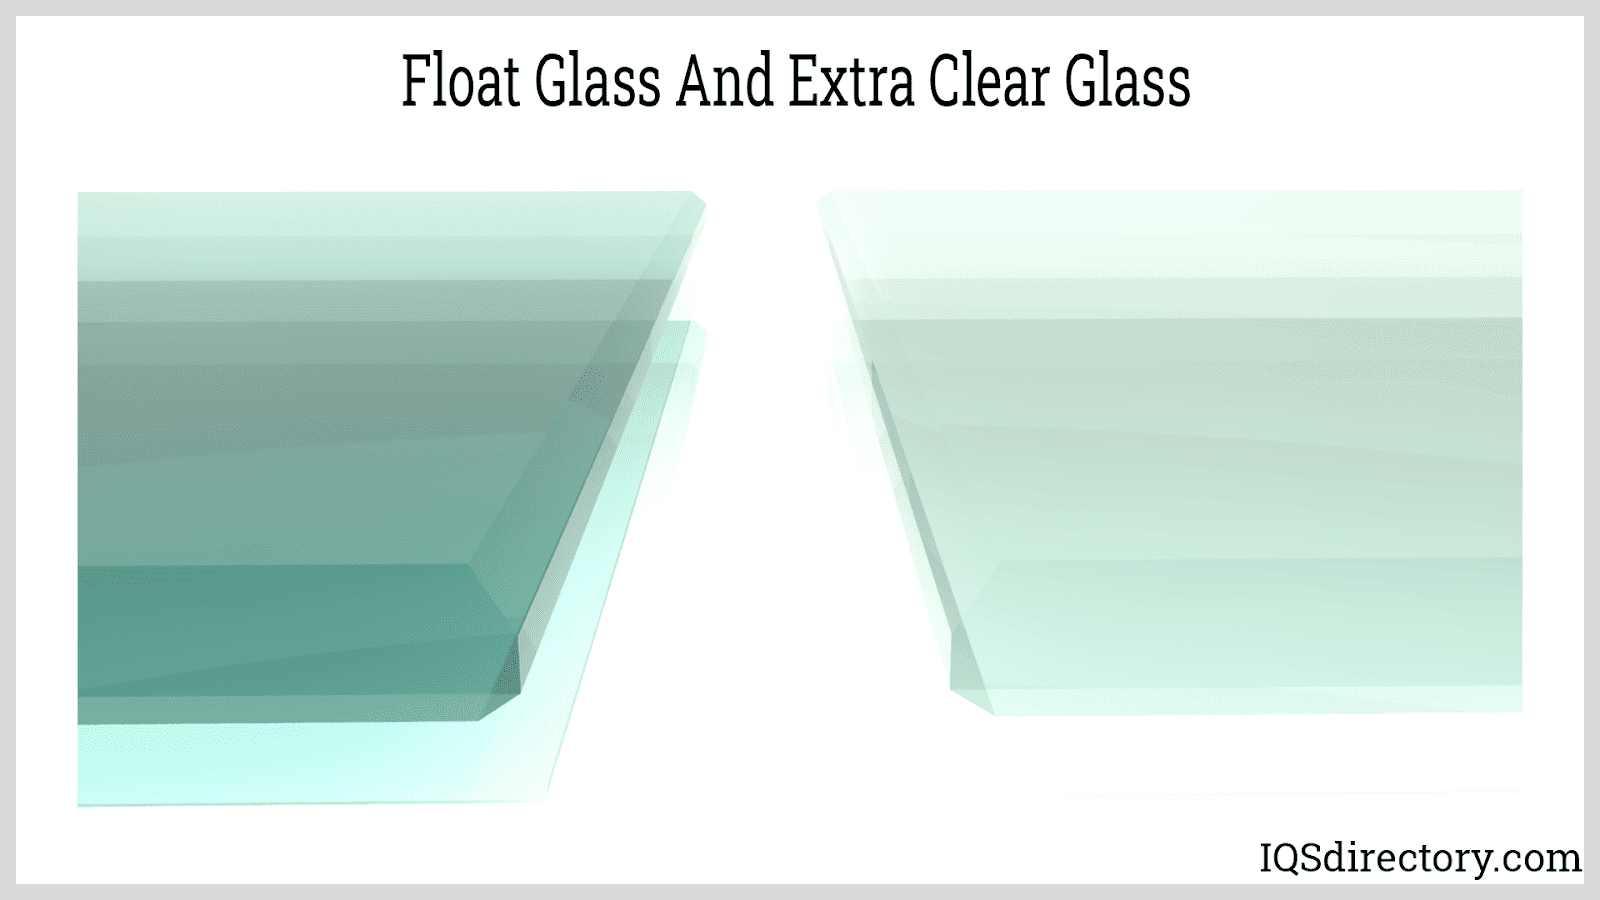 Float Glass and Extra Clear Glass